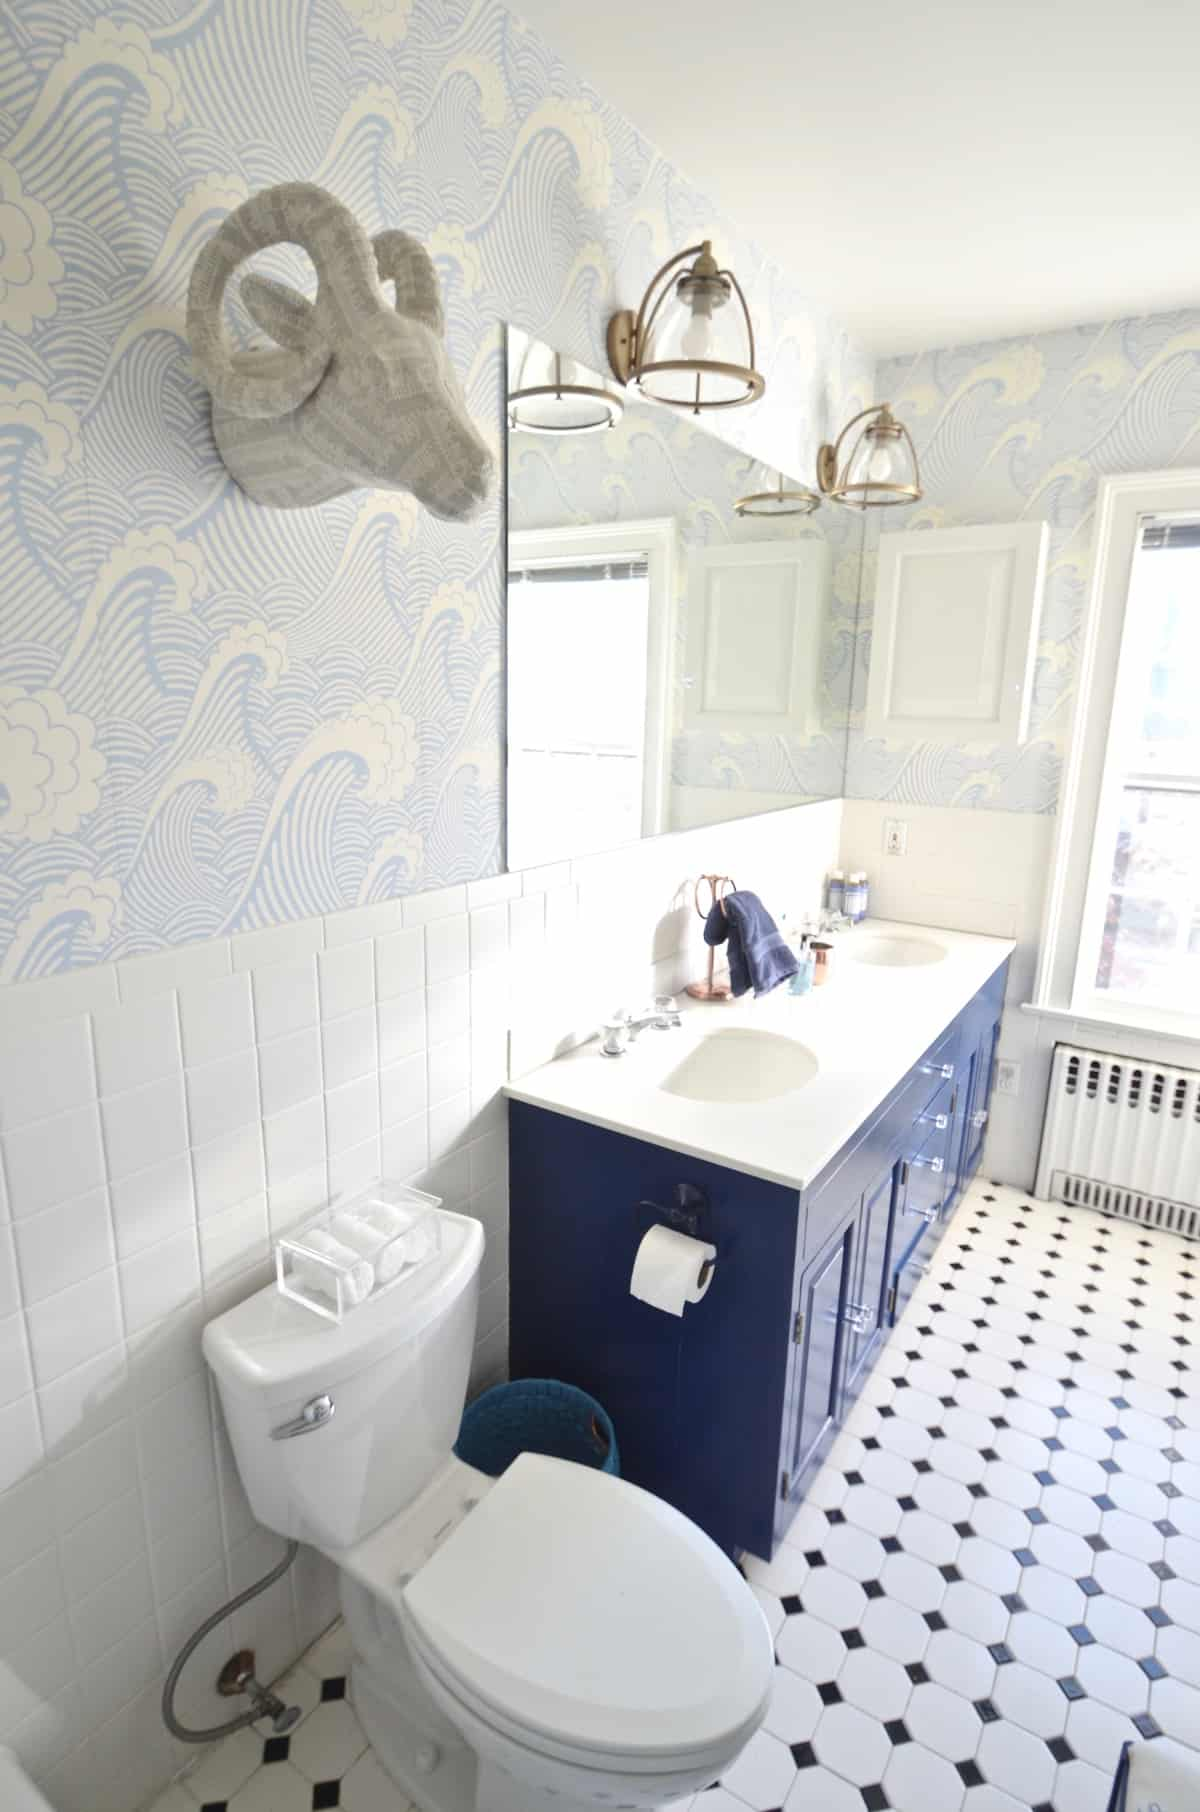 How To  Removable Wallpaper   At Charlotte s House Updated kids bathroom with wallpaper and new pendant lights